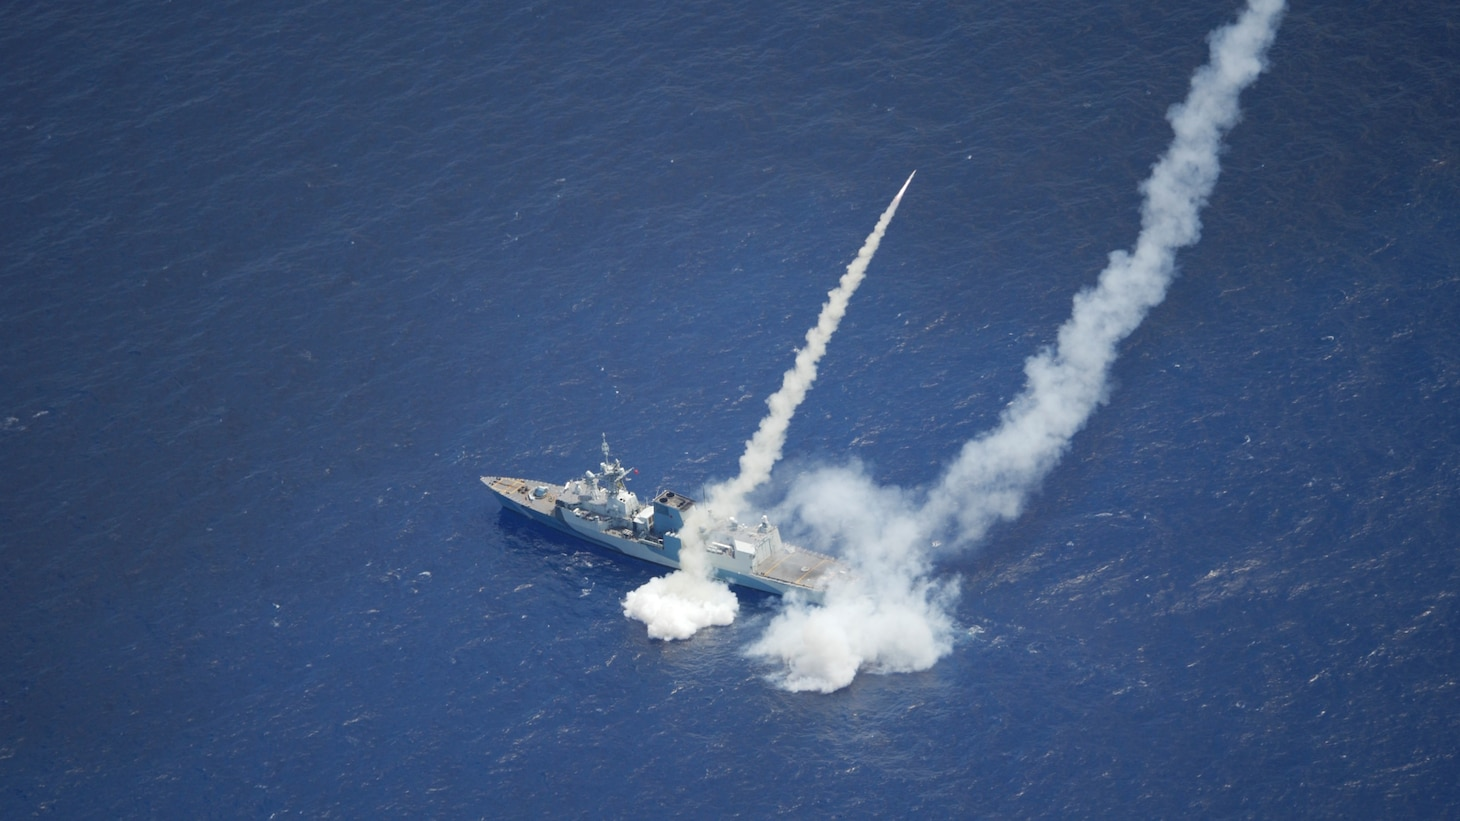 Royal Canadian Navy ship HMCS Regina (FFH 334)  fires two Harpoon Surface to Surface Missiles as part of Exercise Rim of the Pacific (RIMPAC) 2020